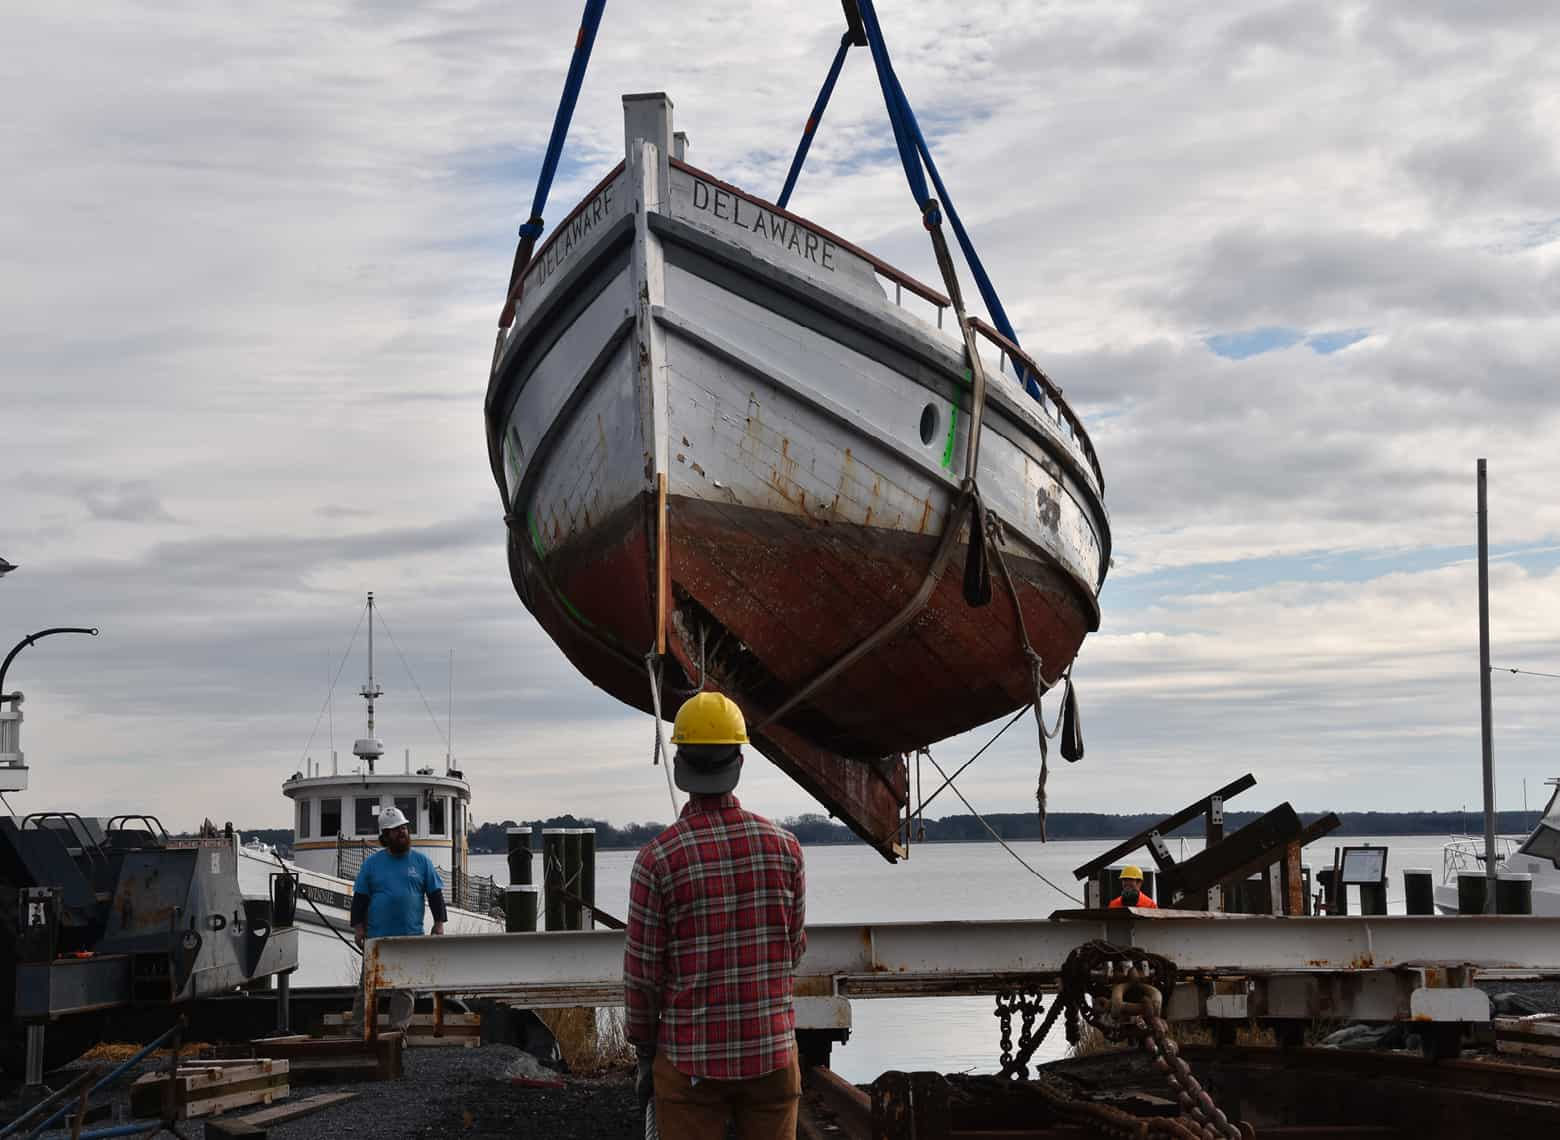 Delaware — Craning to the Hard